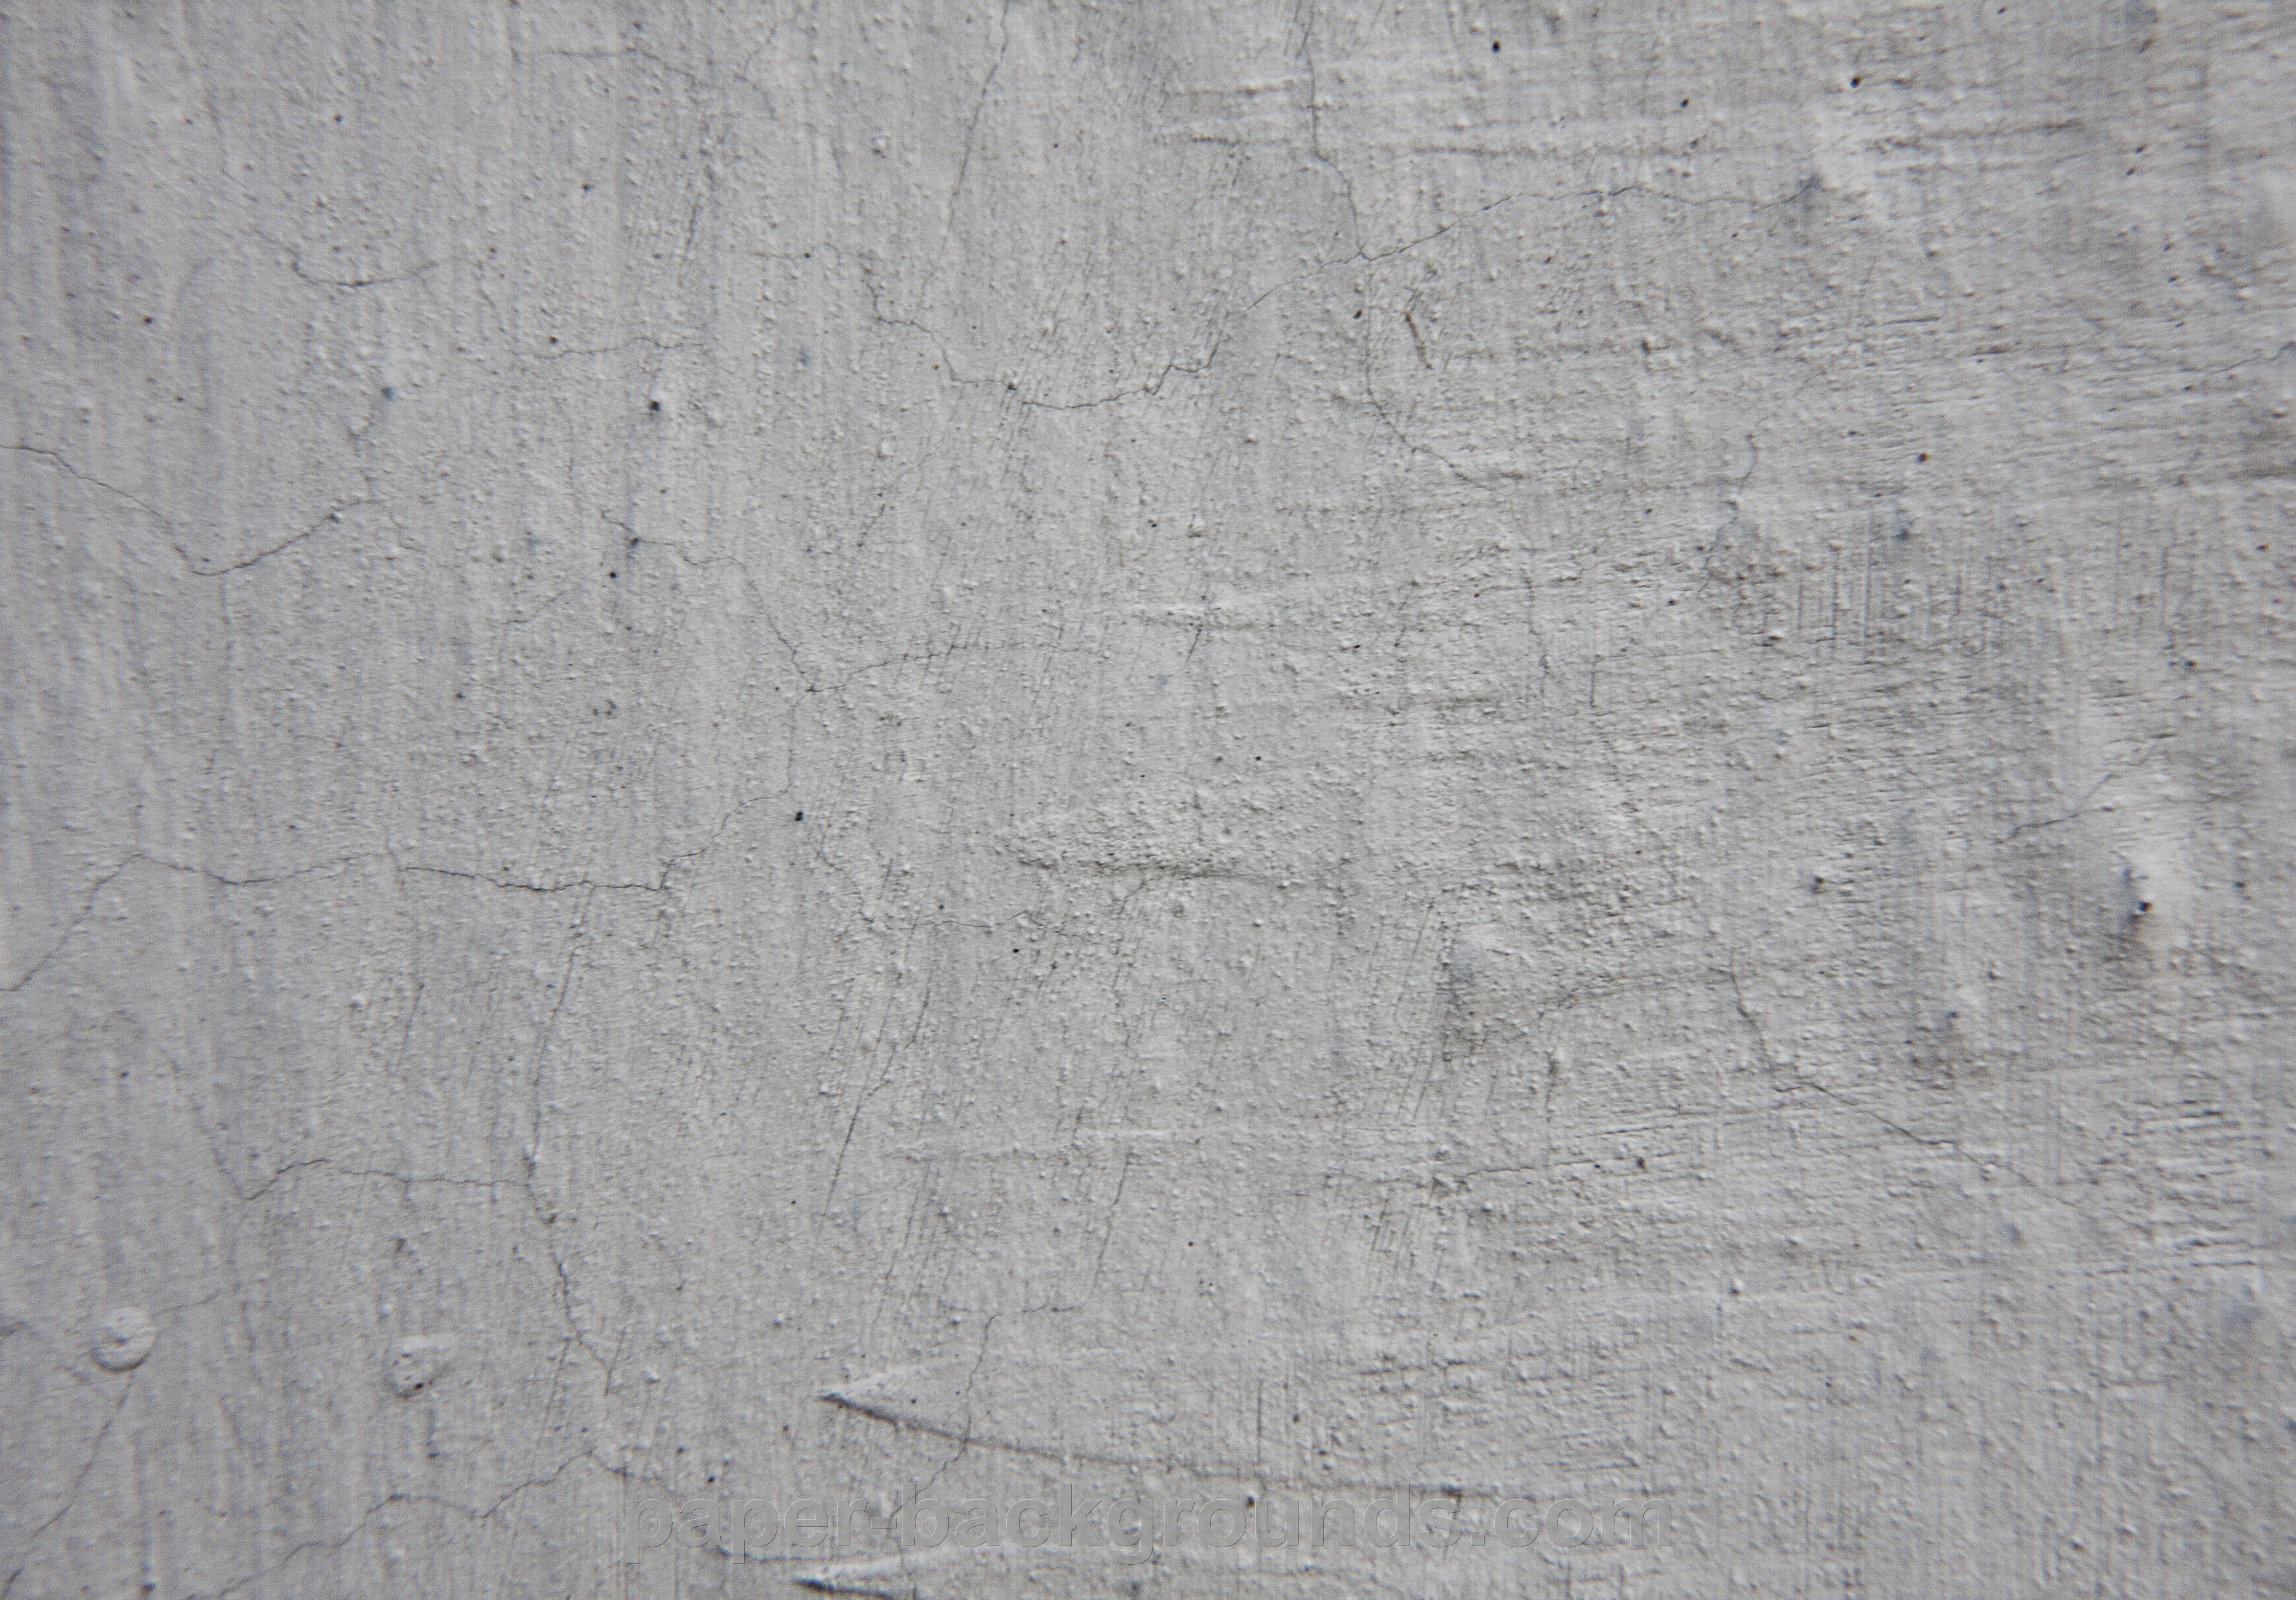 Concrete Wall Background Gray concrete 3918x2731